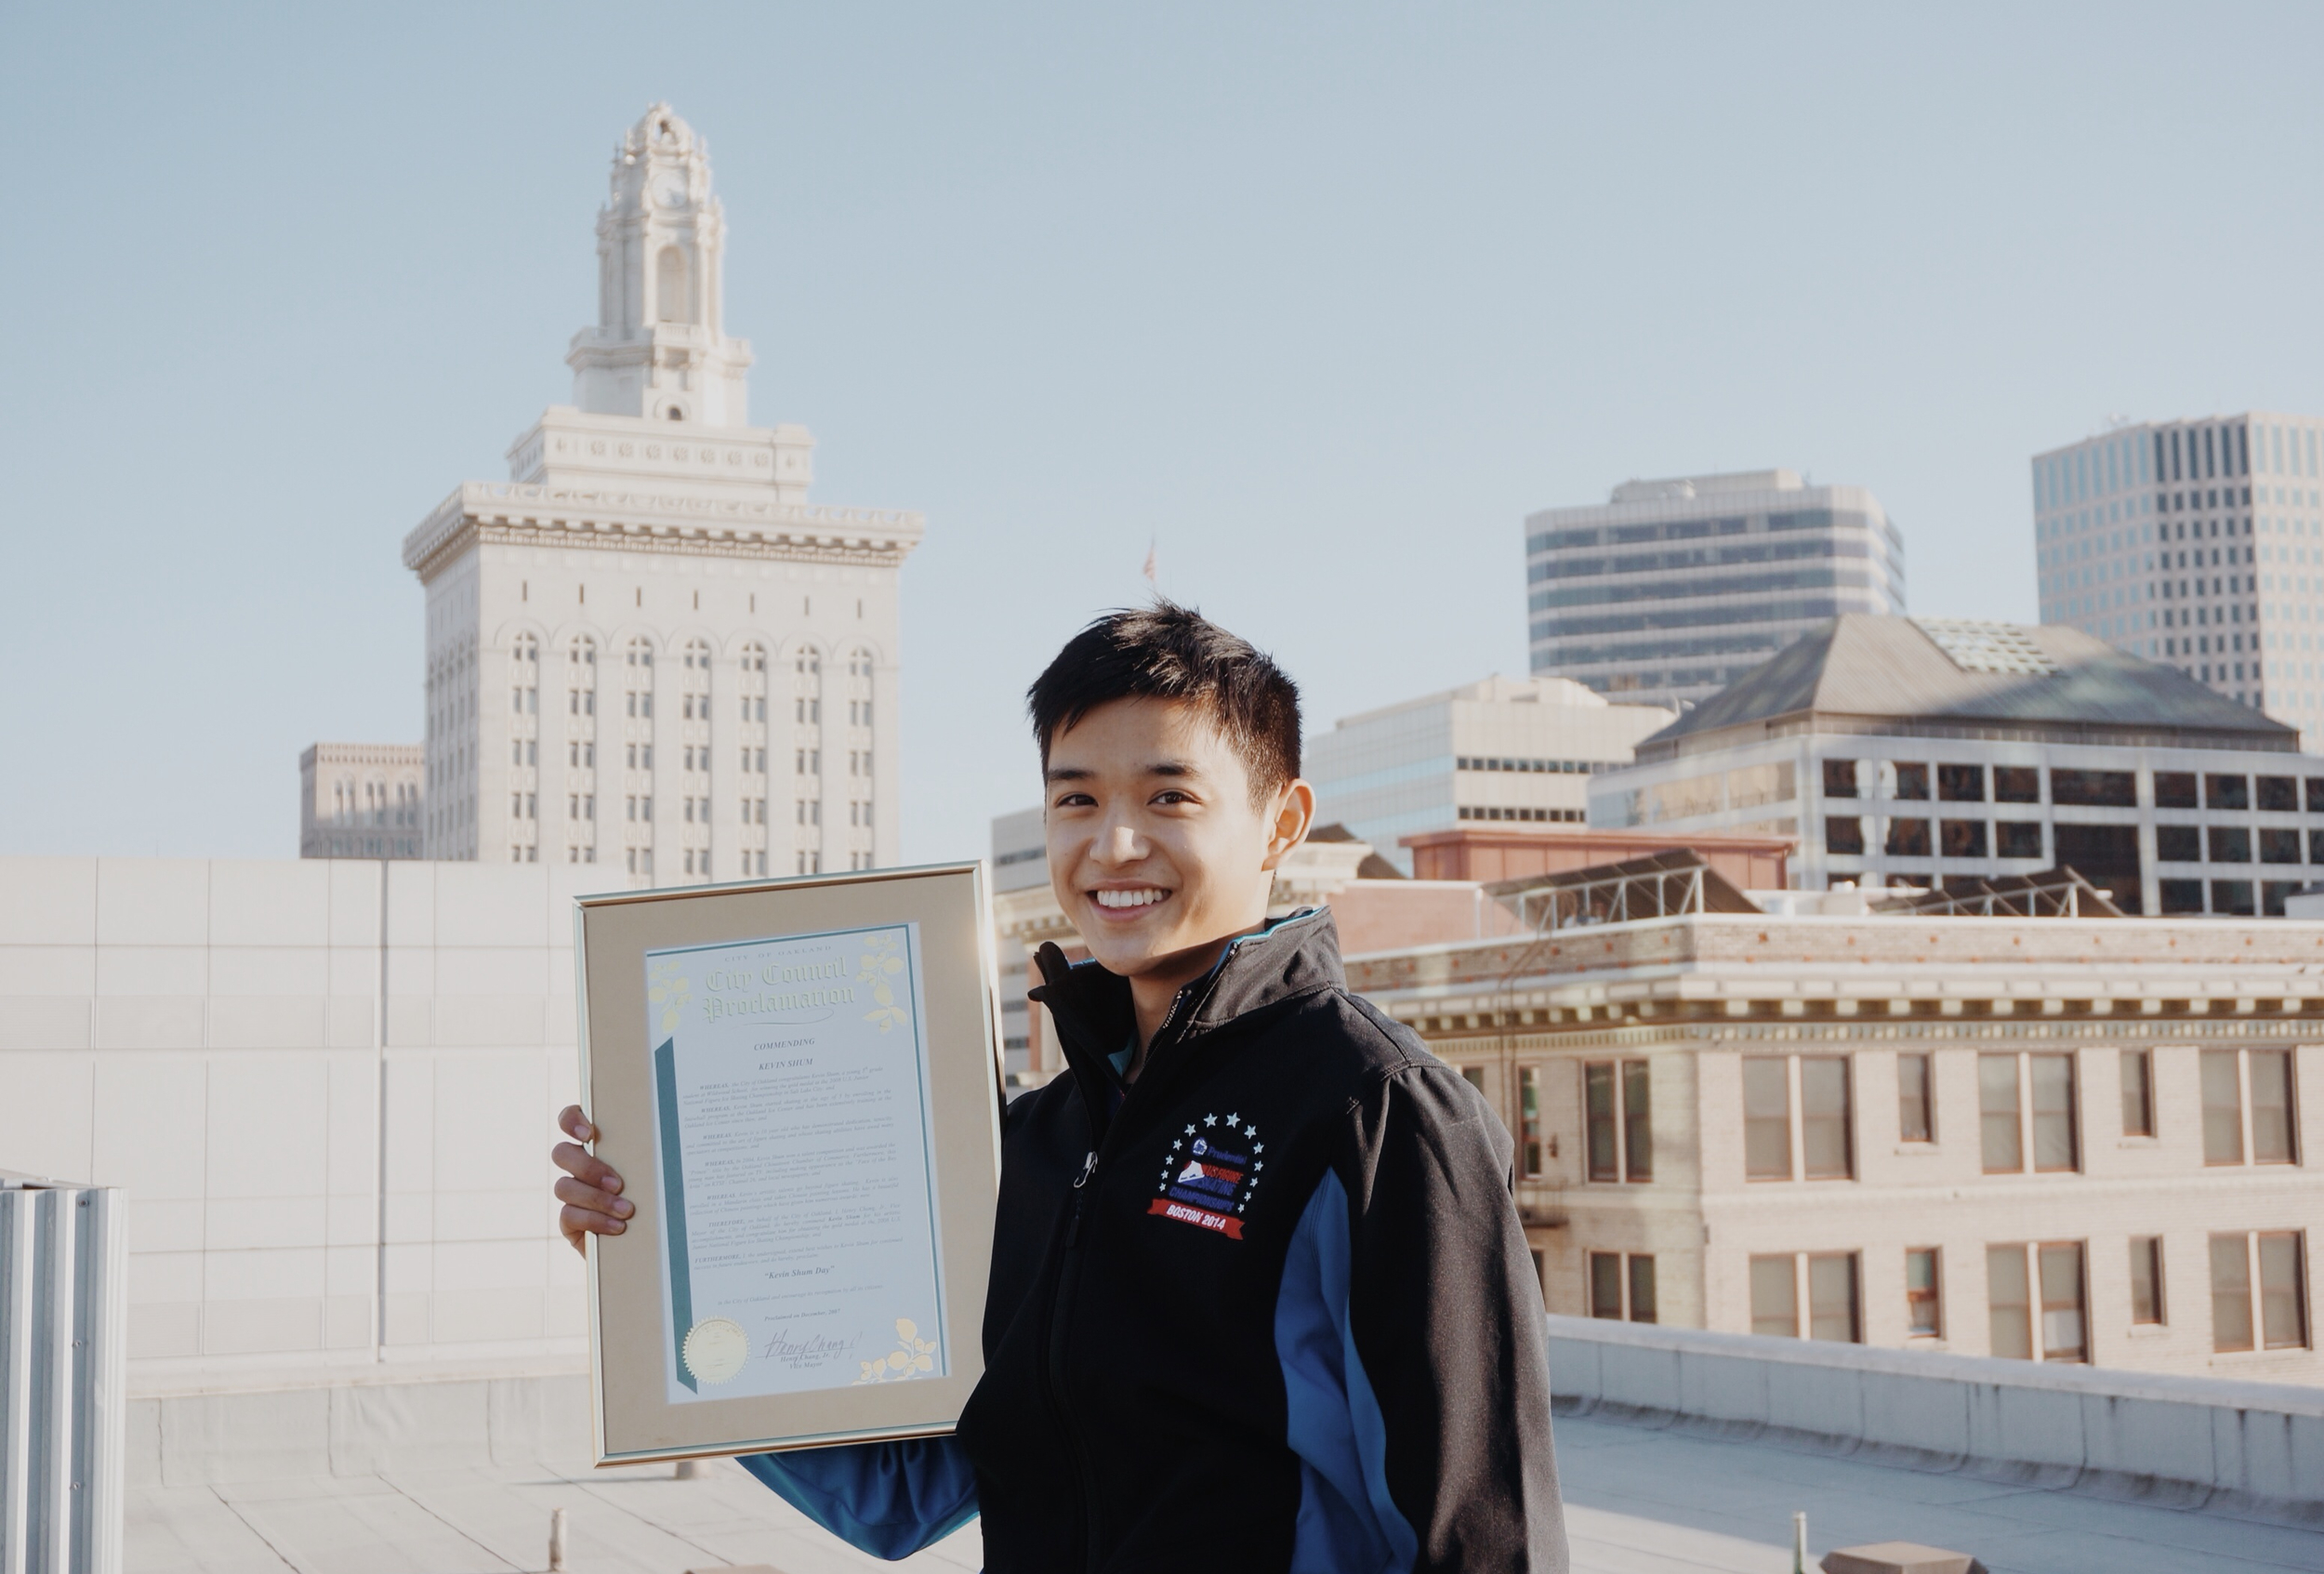 Celebrating Kevin Shum Day on the eve of 2014 in front of Oakland's City Hall